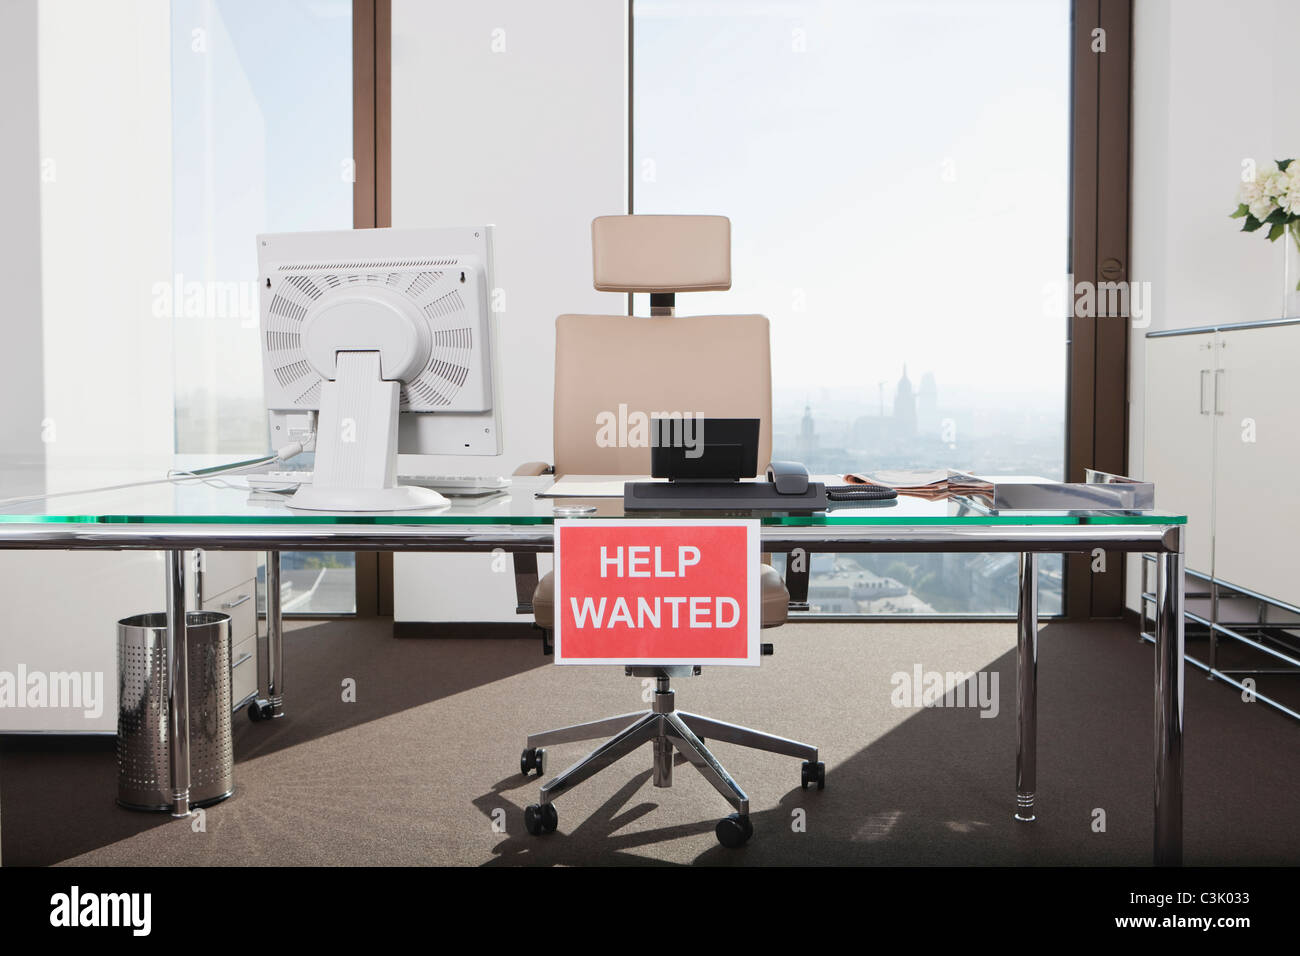 Germany, Frankfurt, Help wanted text sign in office - Stock Image